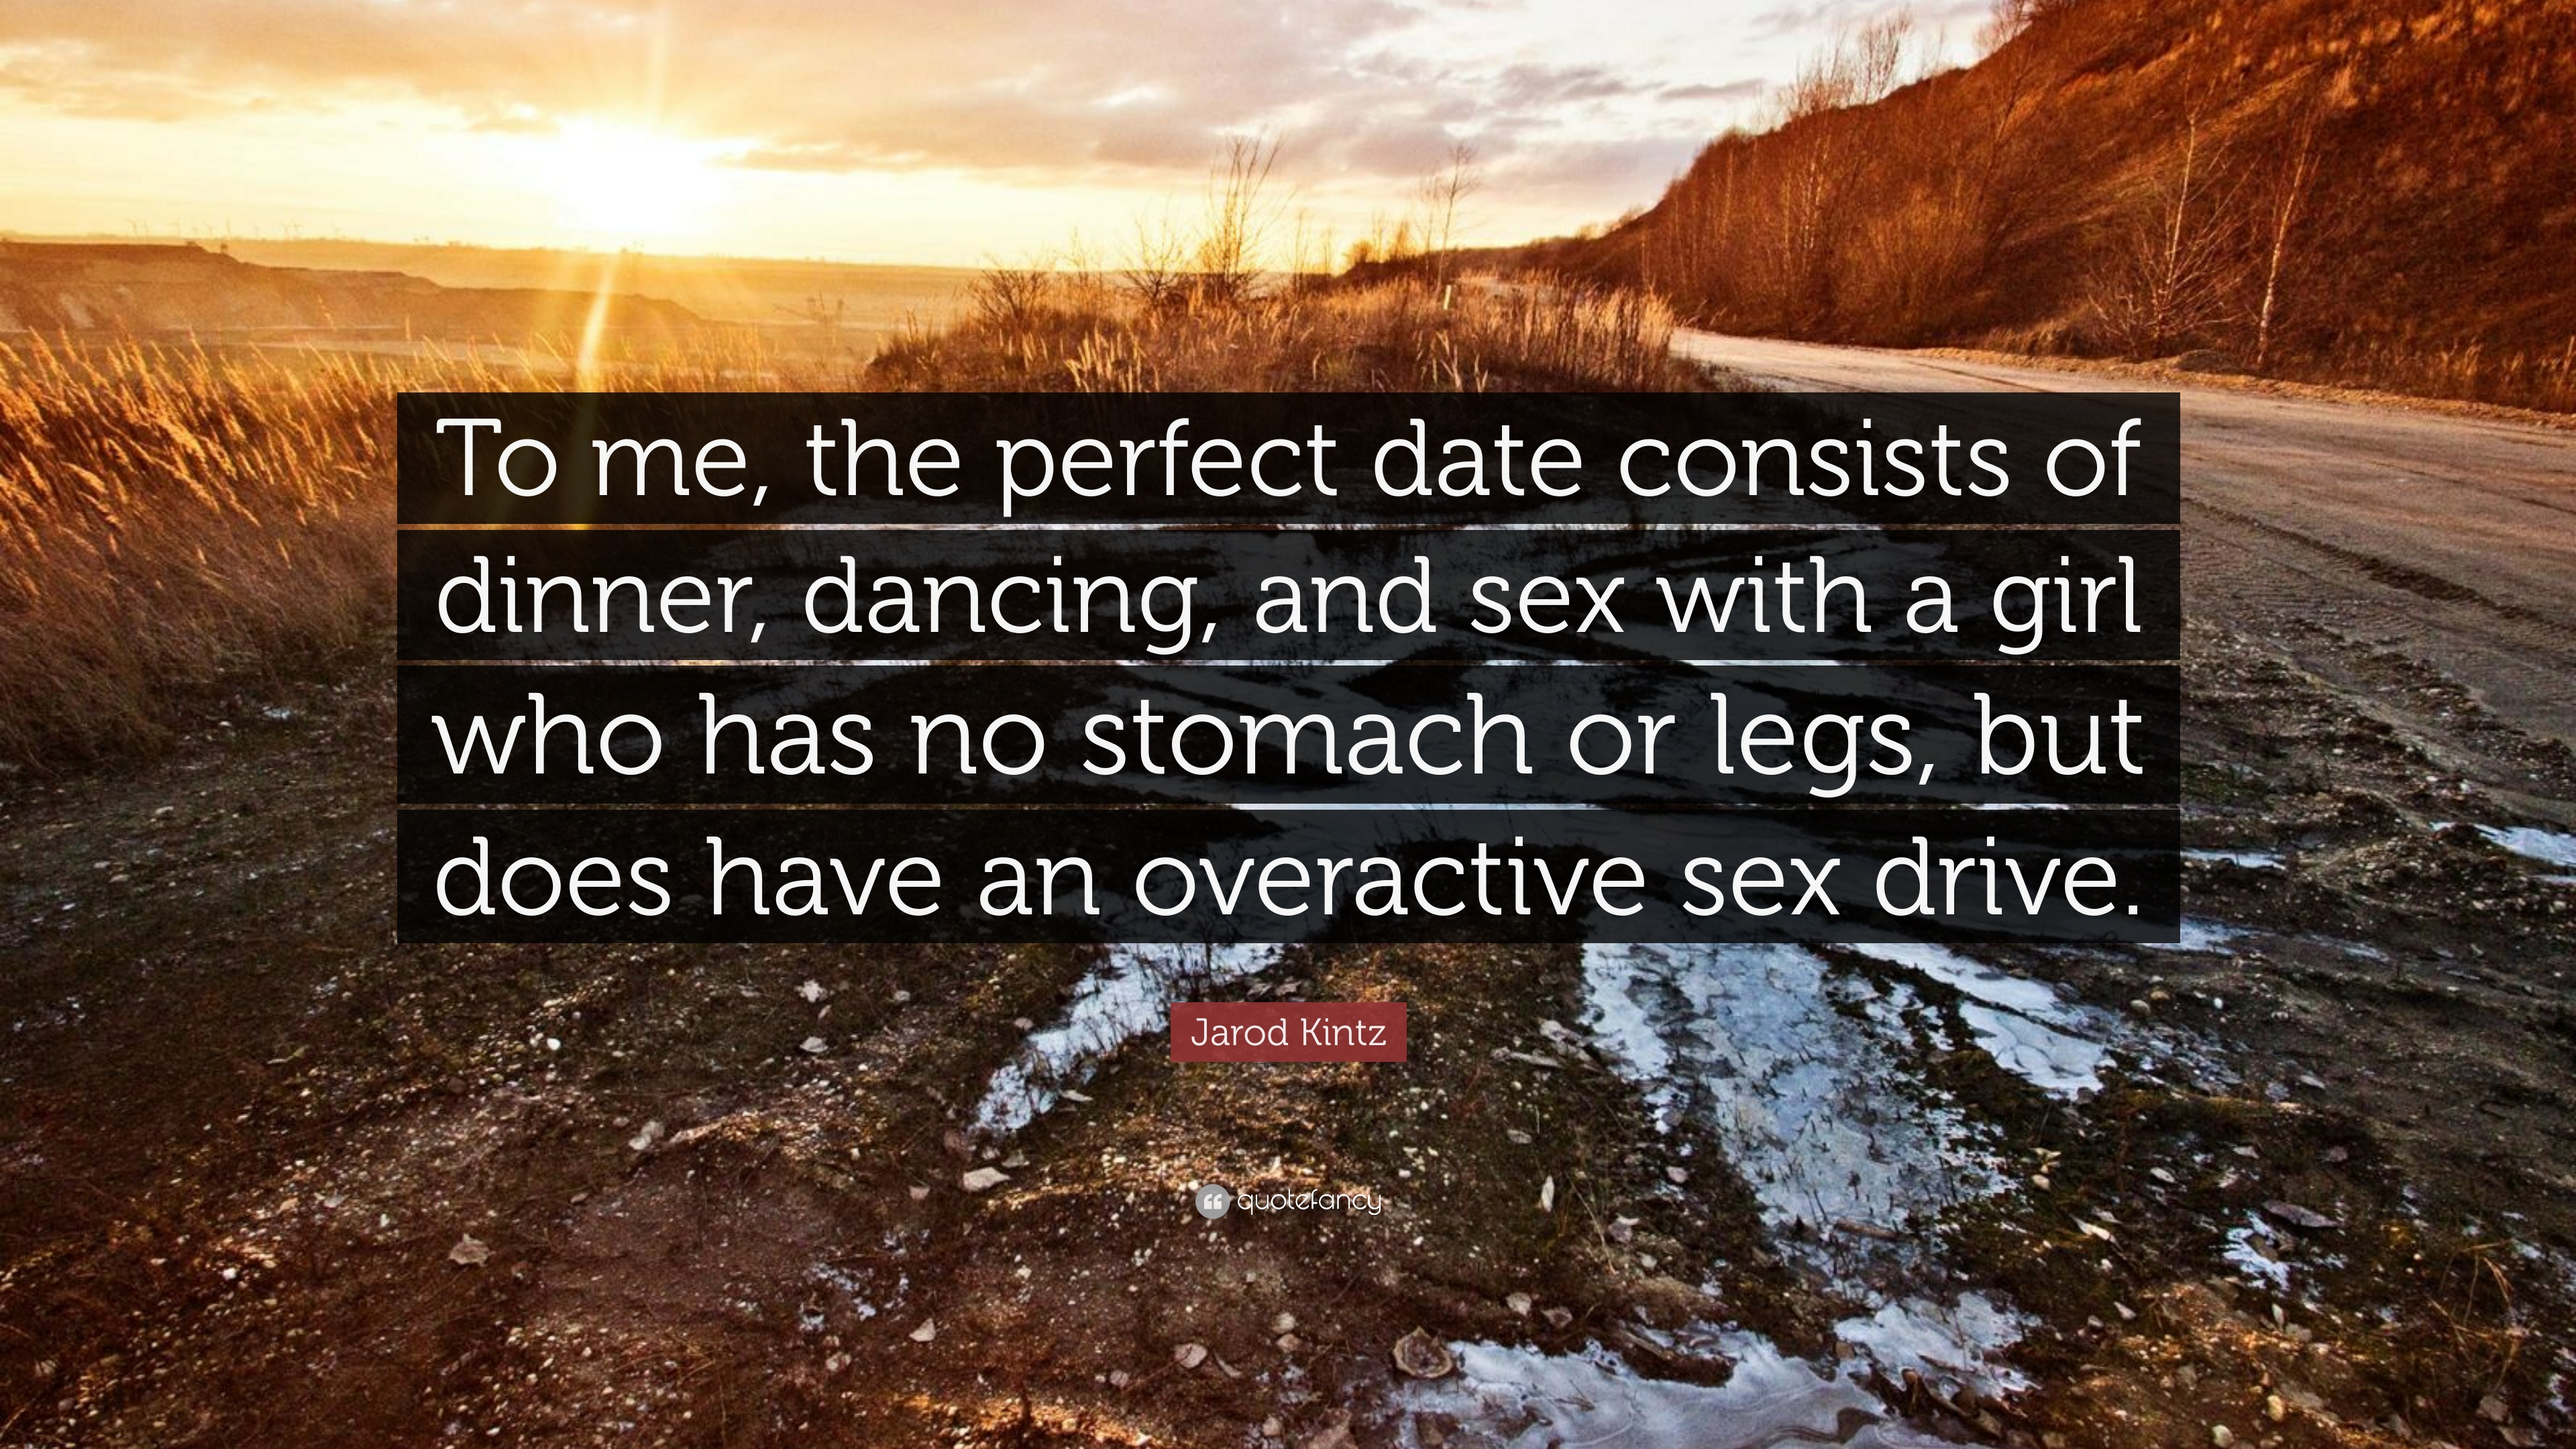 The perfect date for a girl